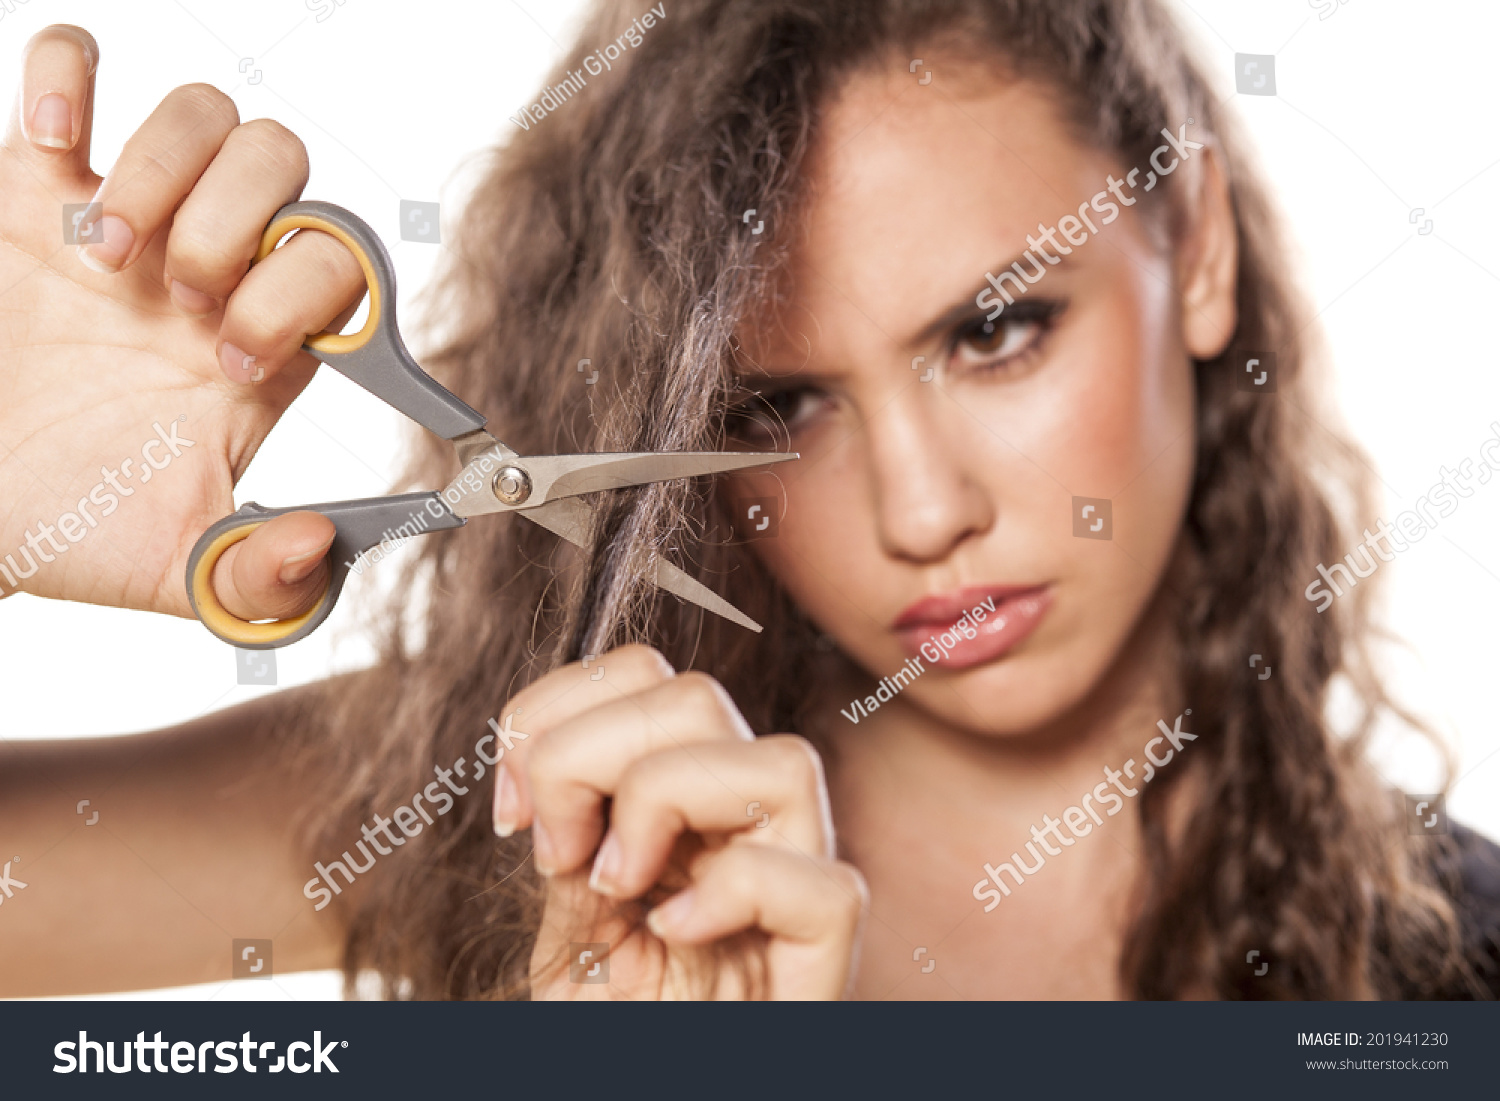 Nervous girl cuts her hair with scissors